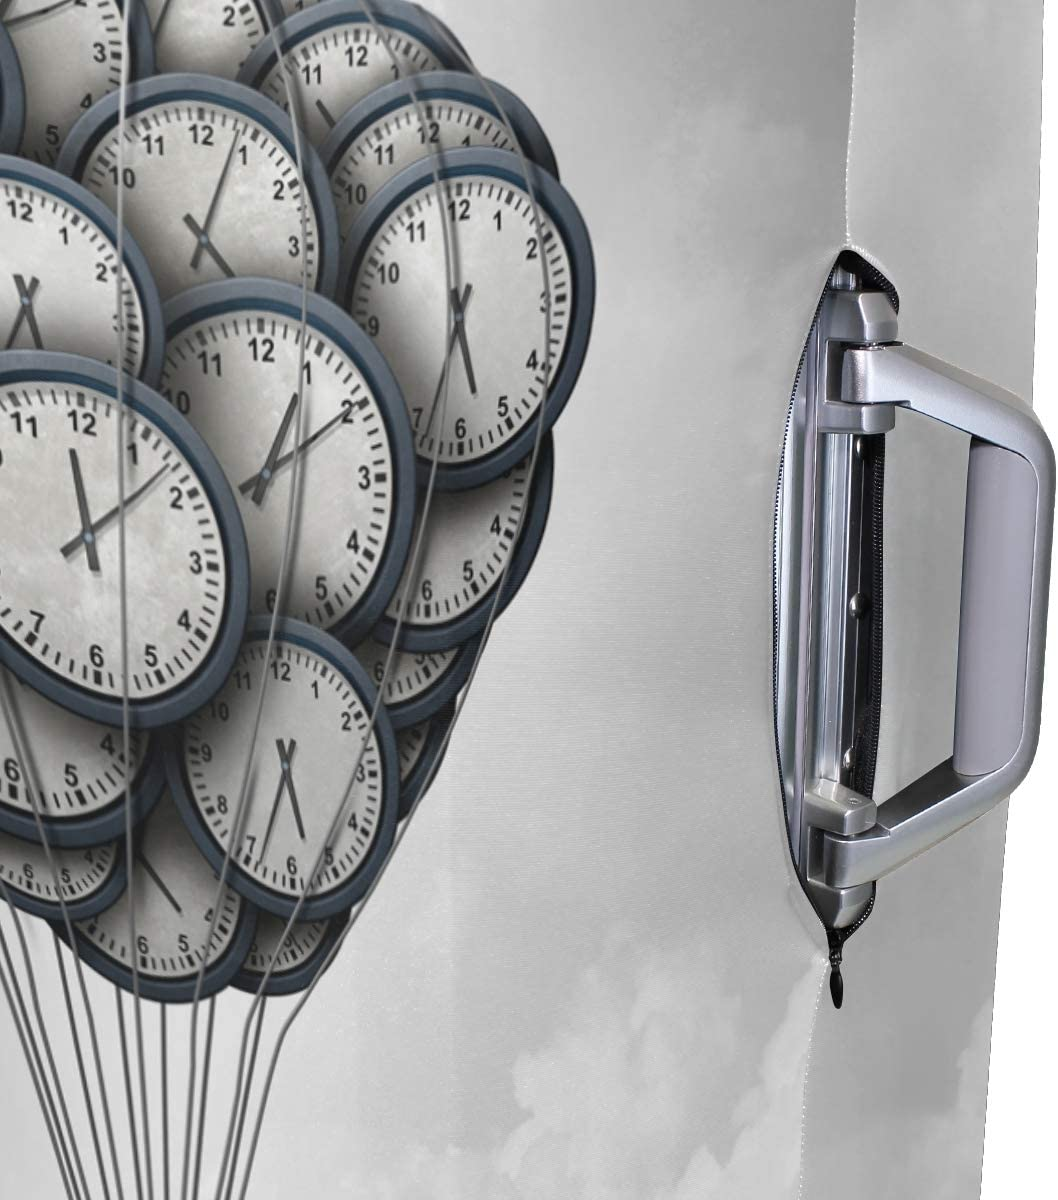 FOLPPLY Retro Clock Hot Air Balloon Luggage Cover Baggage Suitcase Travel Protector Fit for 18-32 Inch